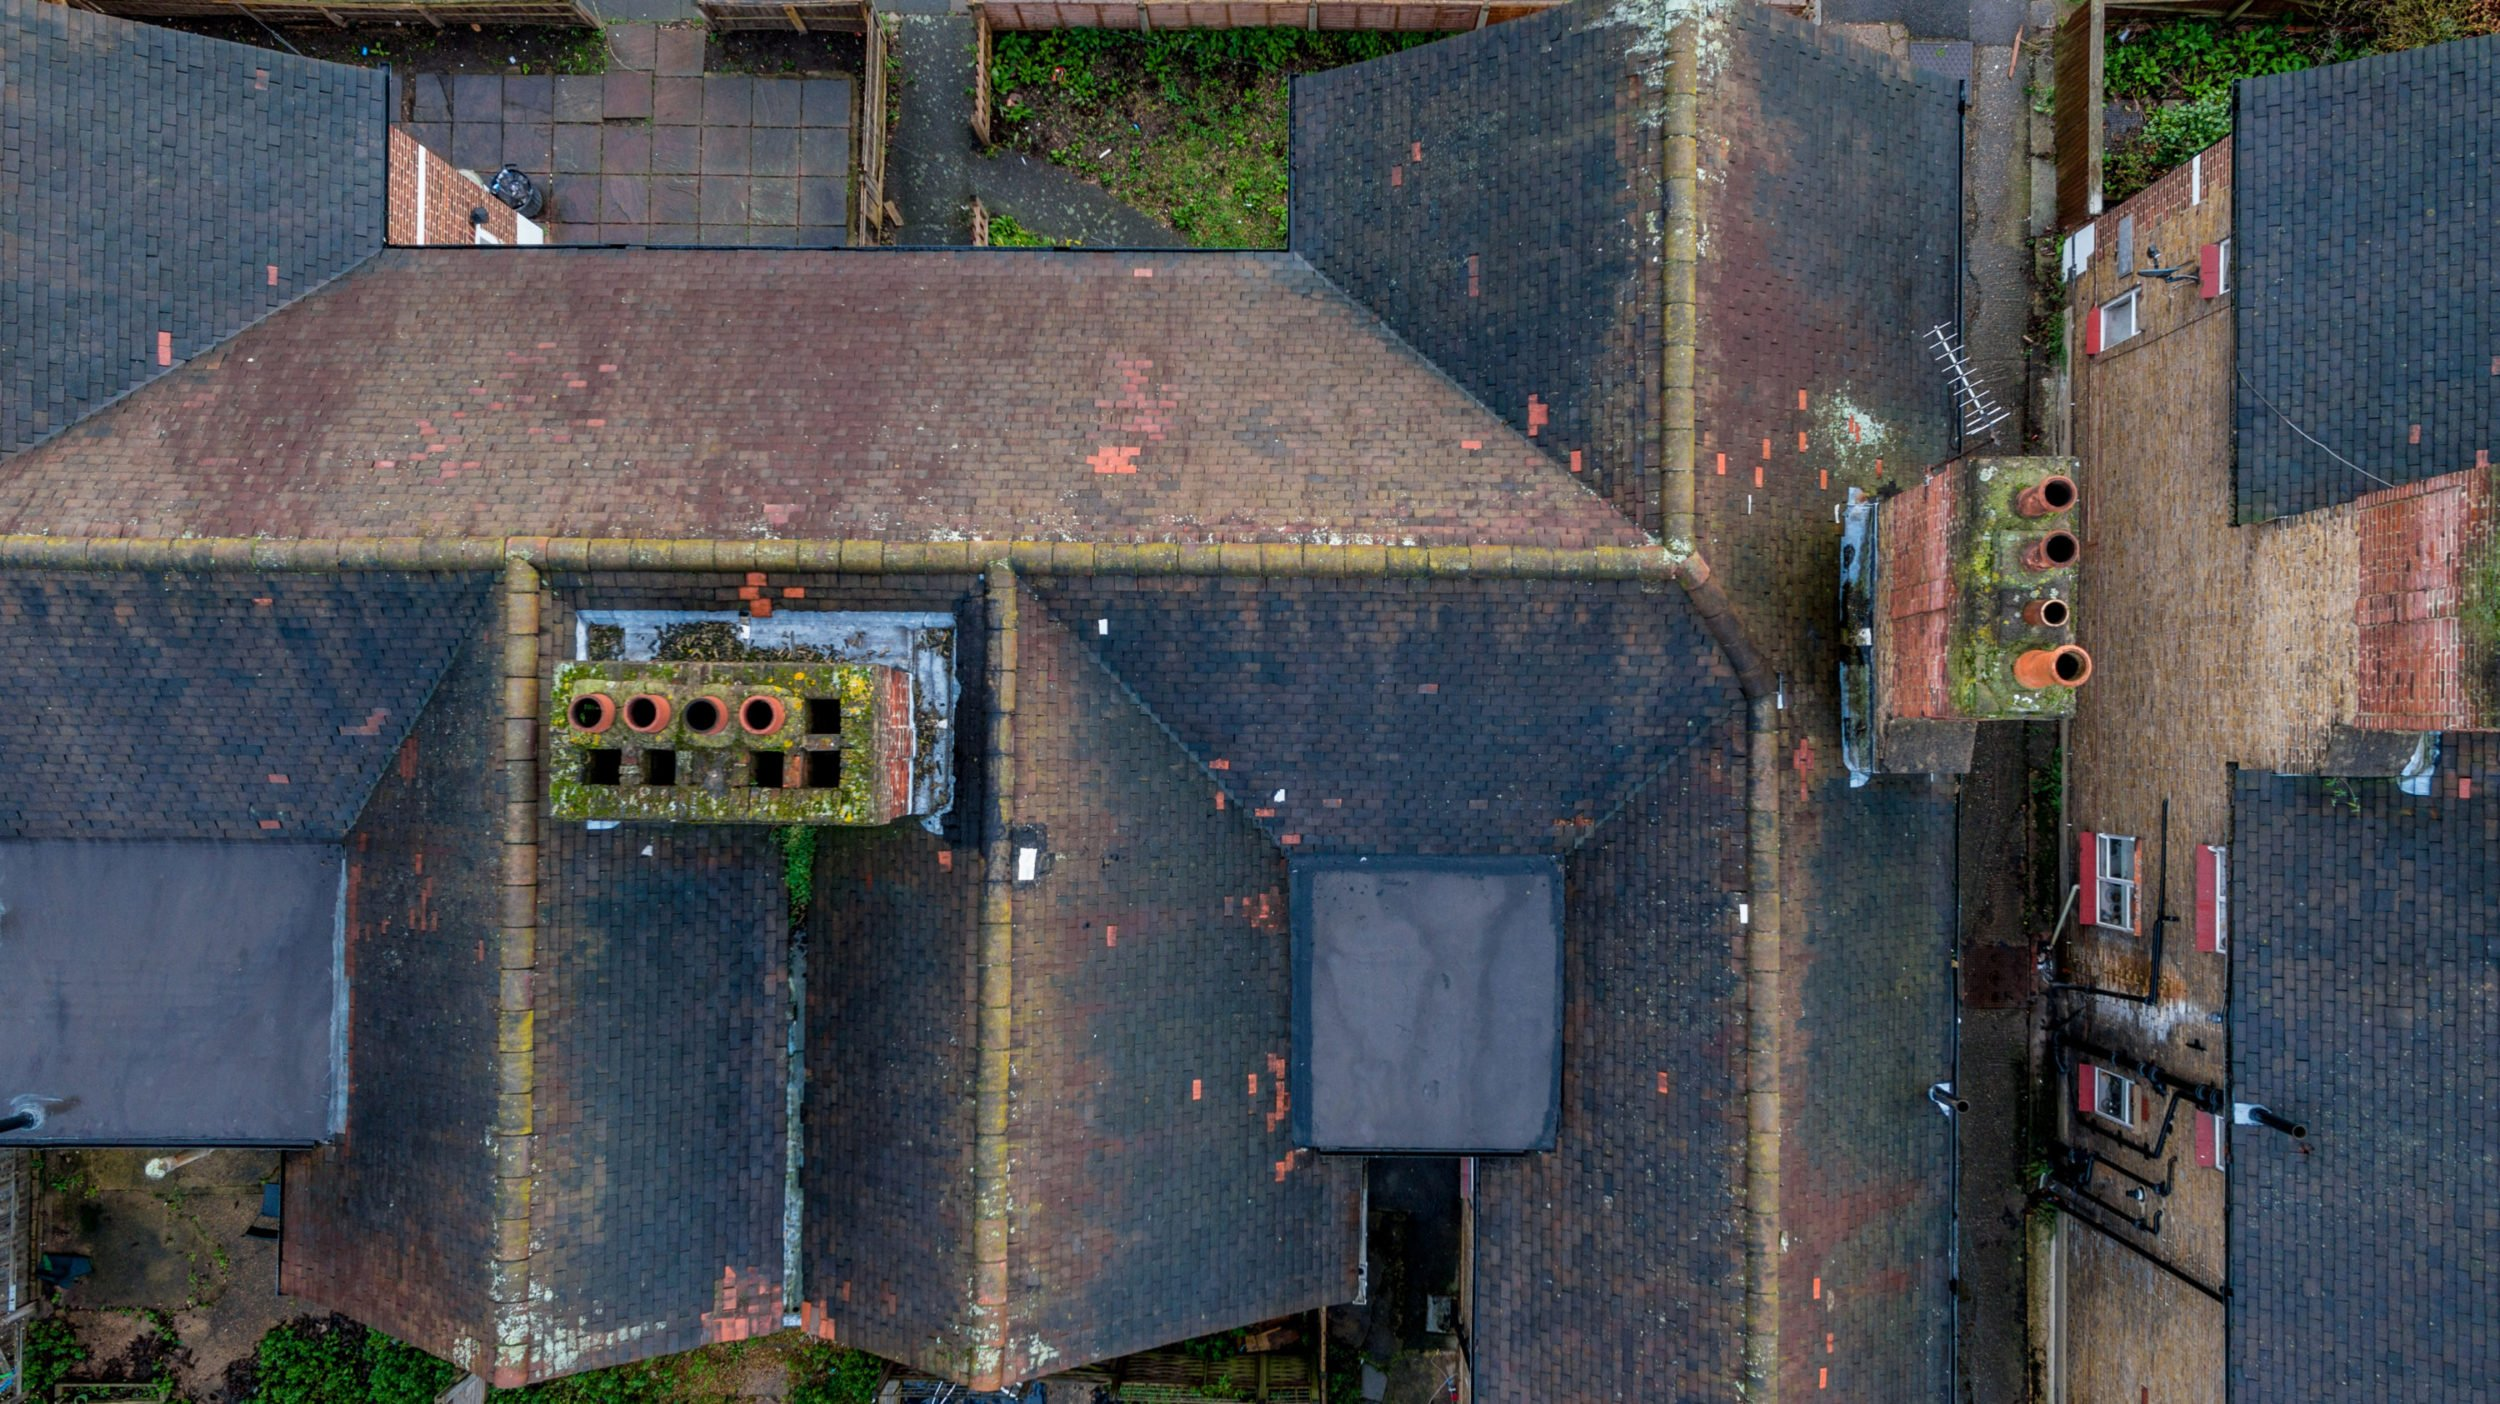 Aerial roof inspection of a London property using drones